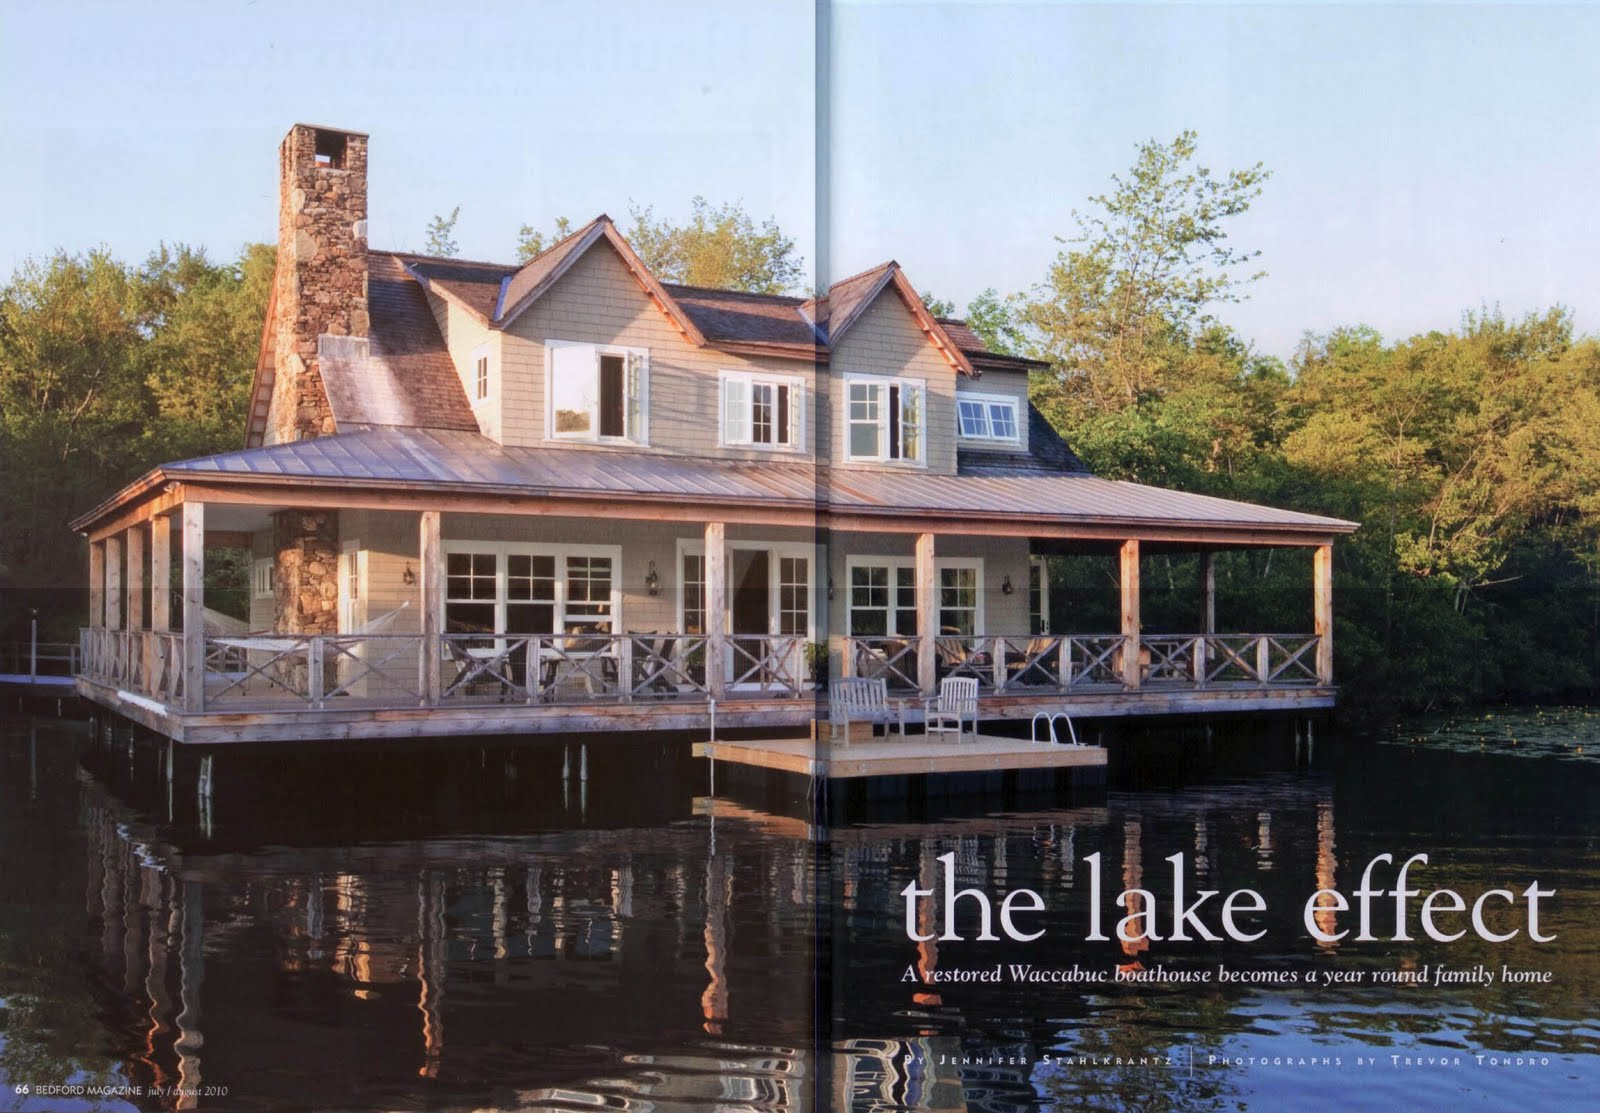 design studio B: now this is a lake house... on